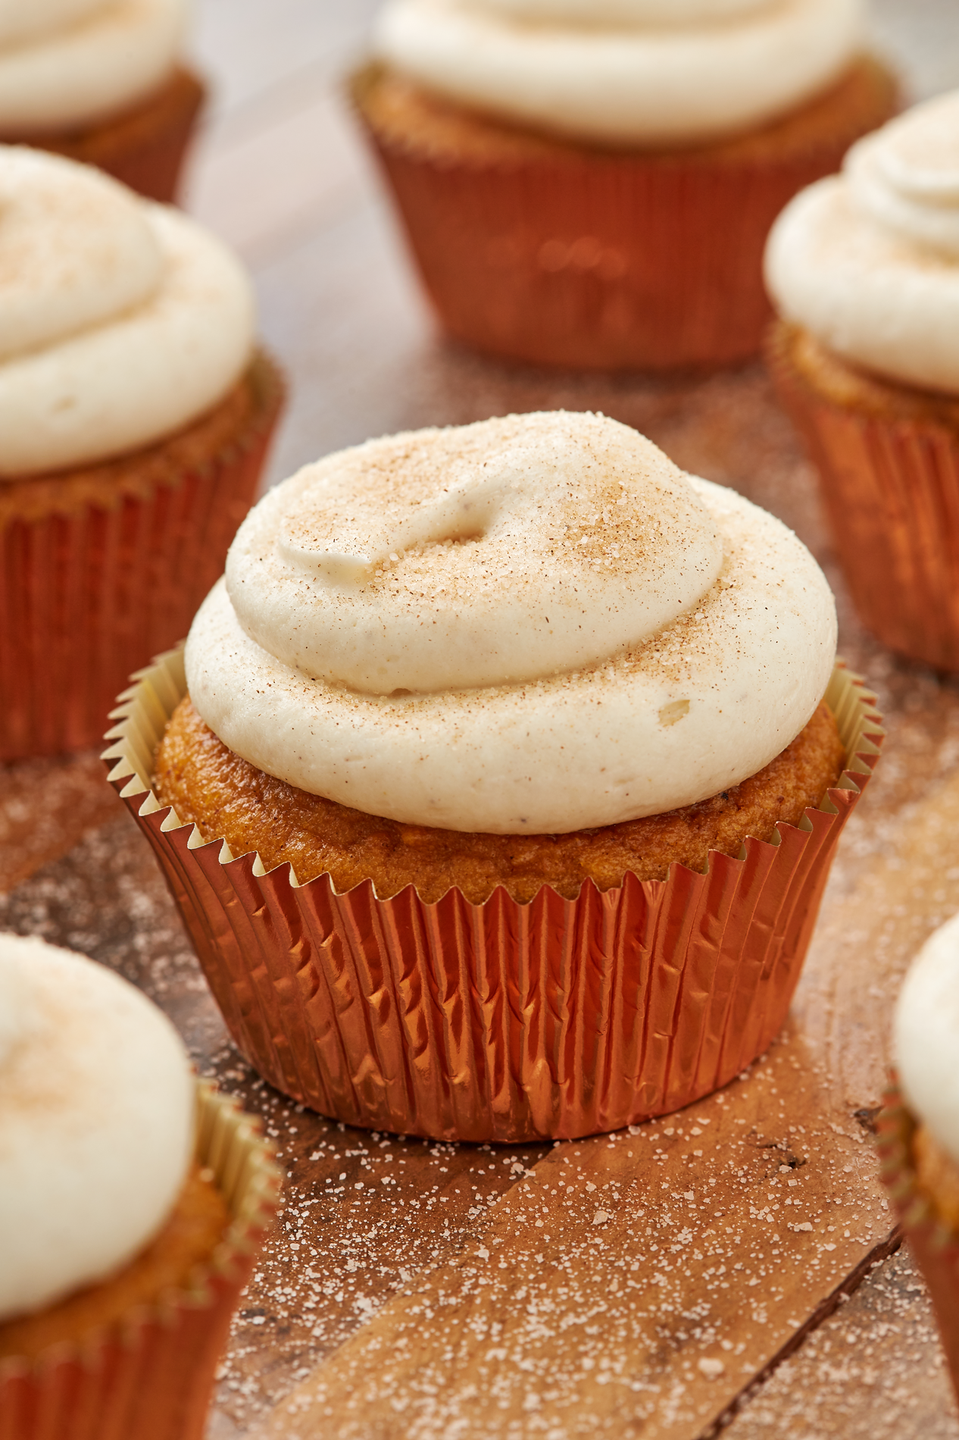 """<p>The cinnamon sugar and cream cheese frosting combo is lethal. </p><p>Get the recipe from <a href=""""https://www.delish.com/cooking/recipe-ideas/a28438880/easy-pumpkin-spice-cupcakes-recipe/"""" rel=""""nofollow noopener"""" target=""""_blank"""" data-ylk=""""slk:Delish"""" class=""""link rapid-noclick-resp"""">Delish</a>. <br></p>"""